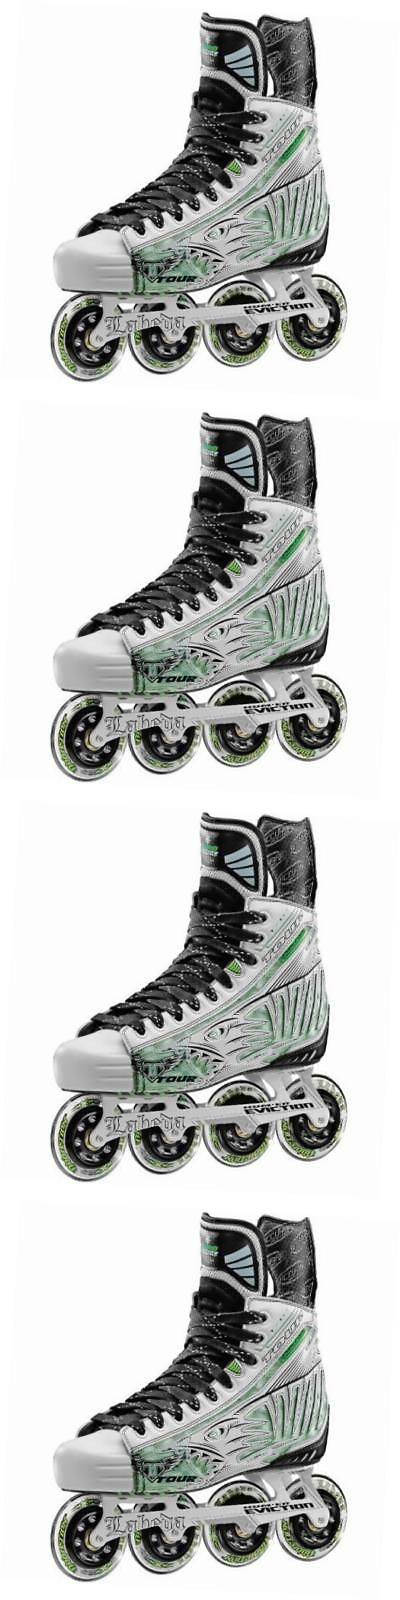 Roller Hockey 64669: Pro Fish Bonelite Inline Hockey Skate, White, 7 -> BUY IT NOW ONLY: $741.83 on eBay!